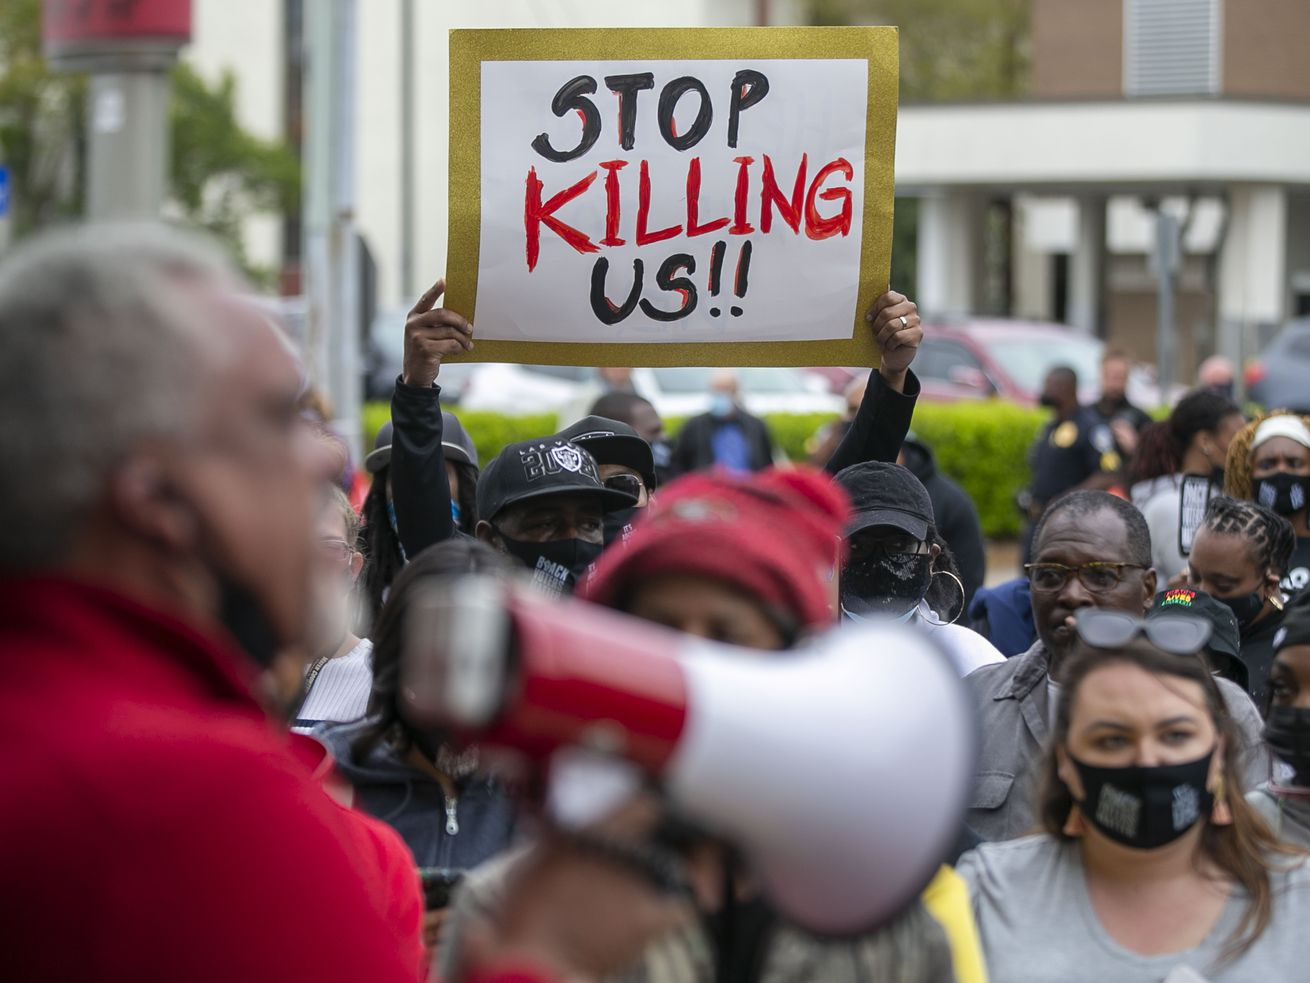 Kirk Rivers addresses demonstrators outside City Hall as they await members of the city council who held an emergency meeting on Friday, April 23, 2021, in Elizabeth City, N.C., in regards to the death of Andrew Brown Jr., who was shot and killed by a Pasquotank County Deputy Sheriff earlier in the week.